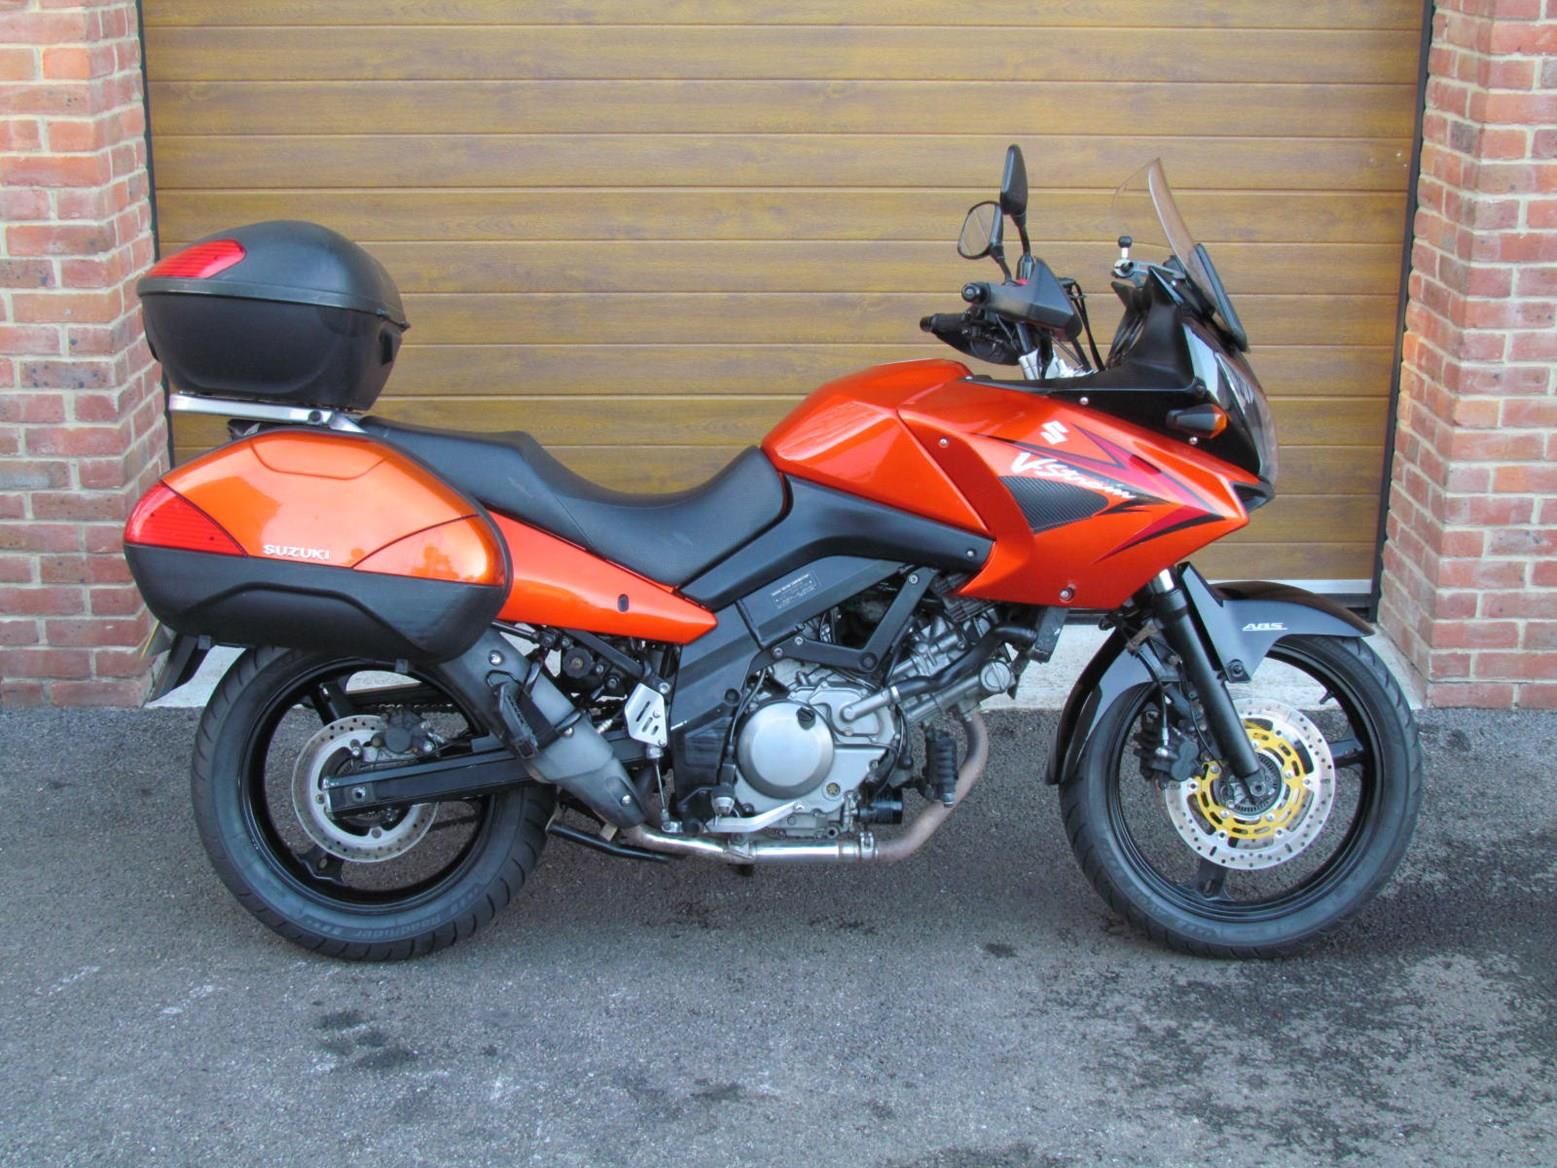 Suzuki DL650 V-Strom for sale